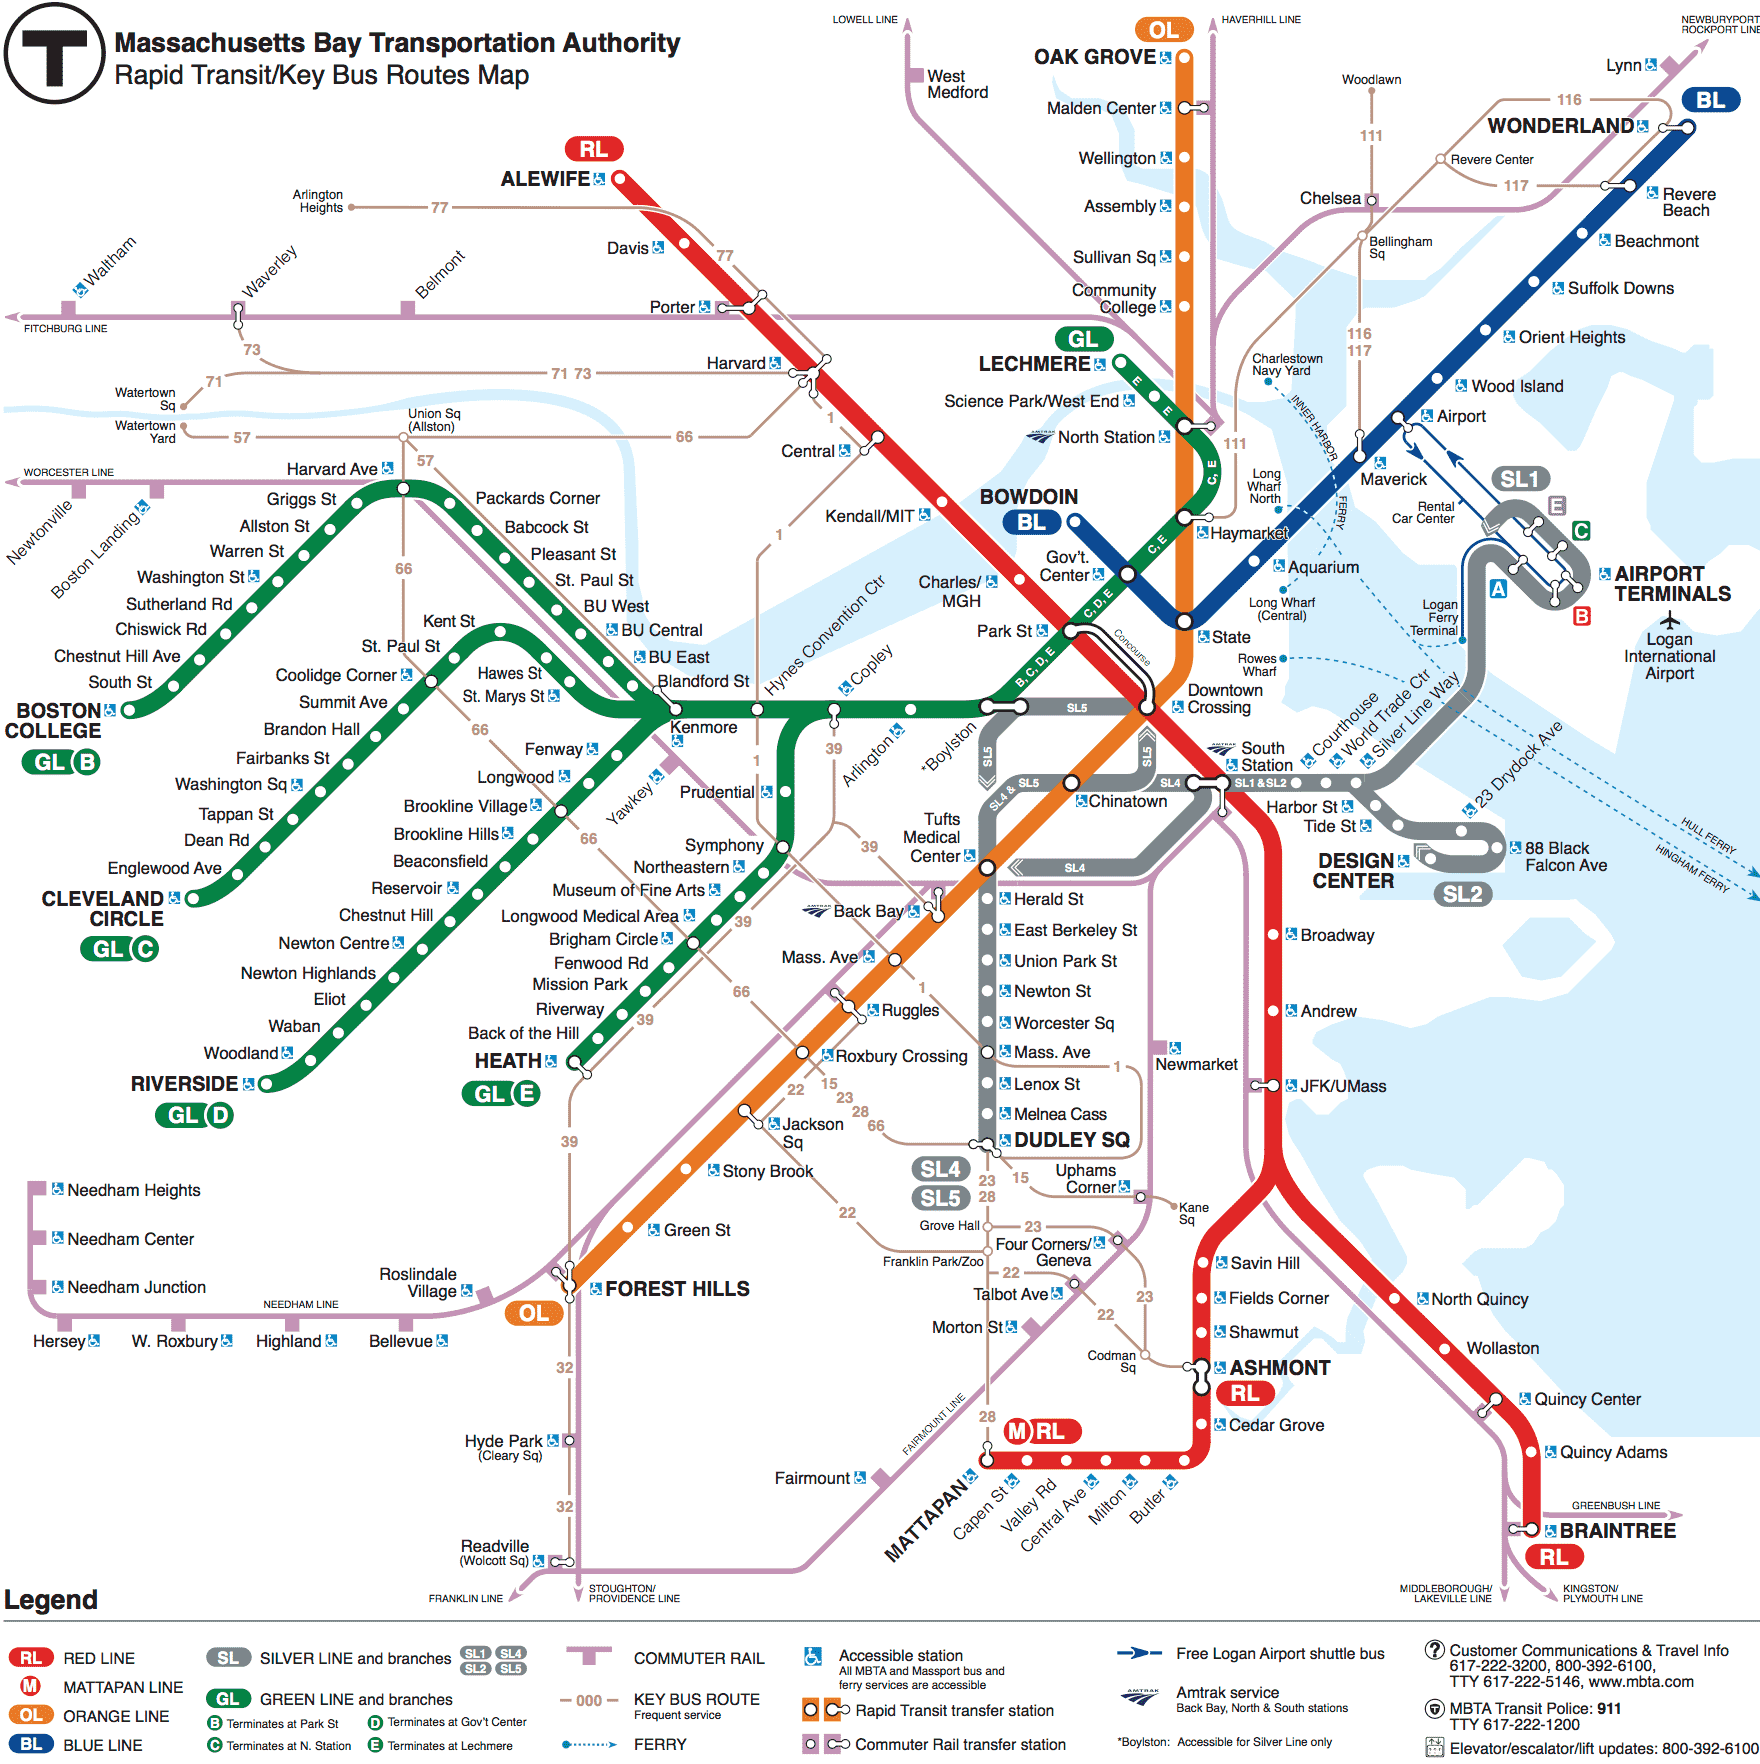 Subway Schedules Maps MBTA Massachusetts Bay - Massachusetts map